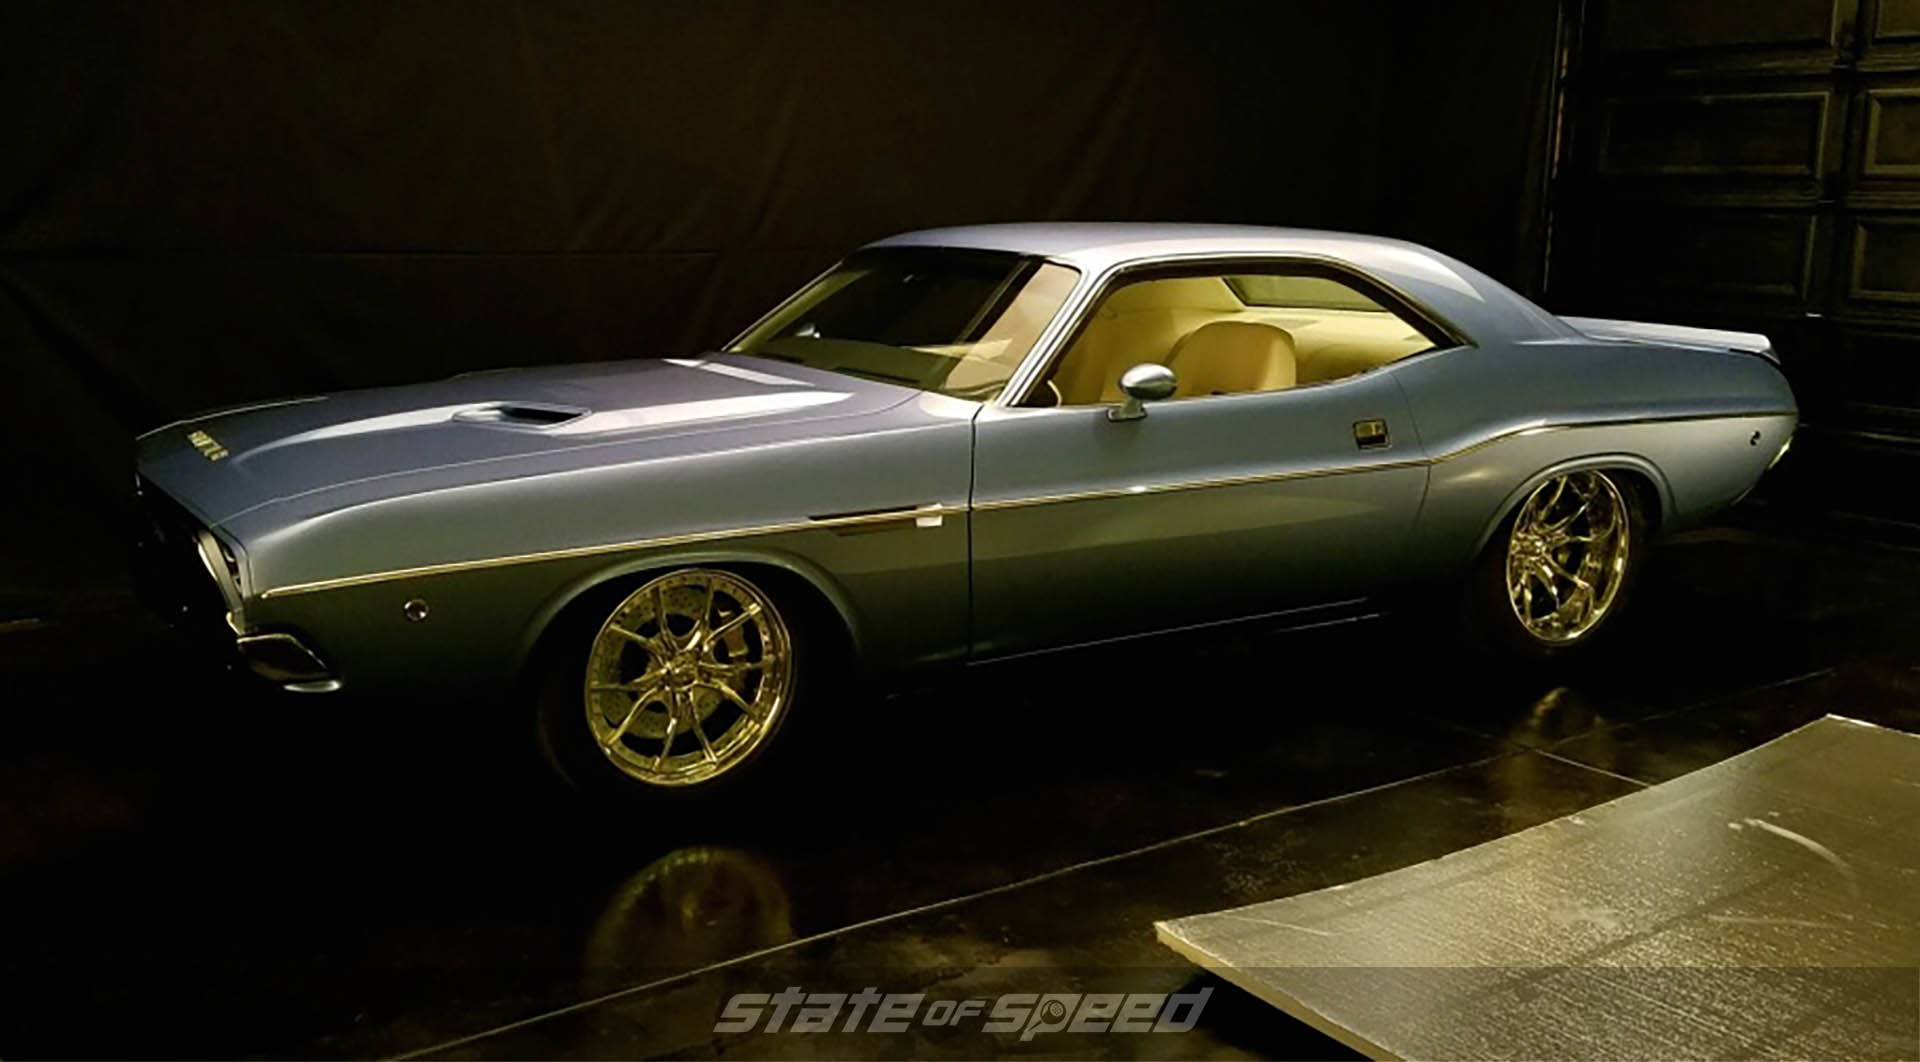 '73 Charles Schwab Challenger on display